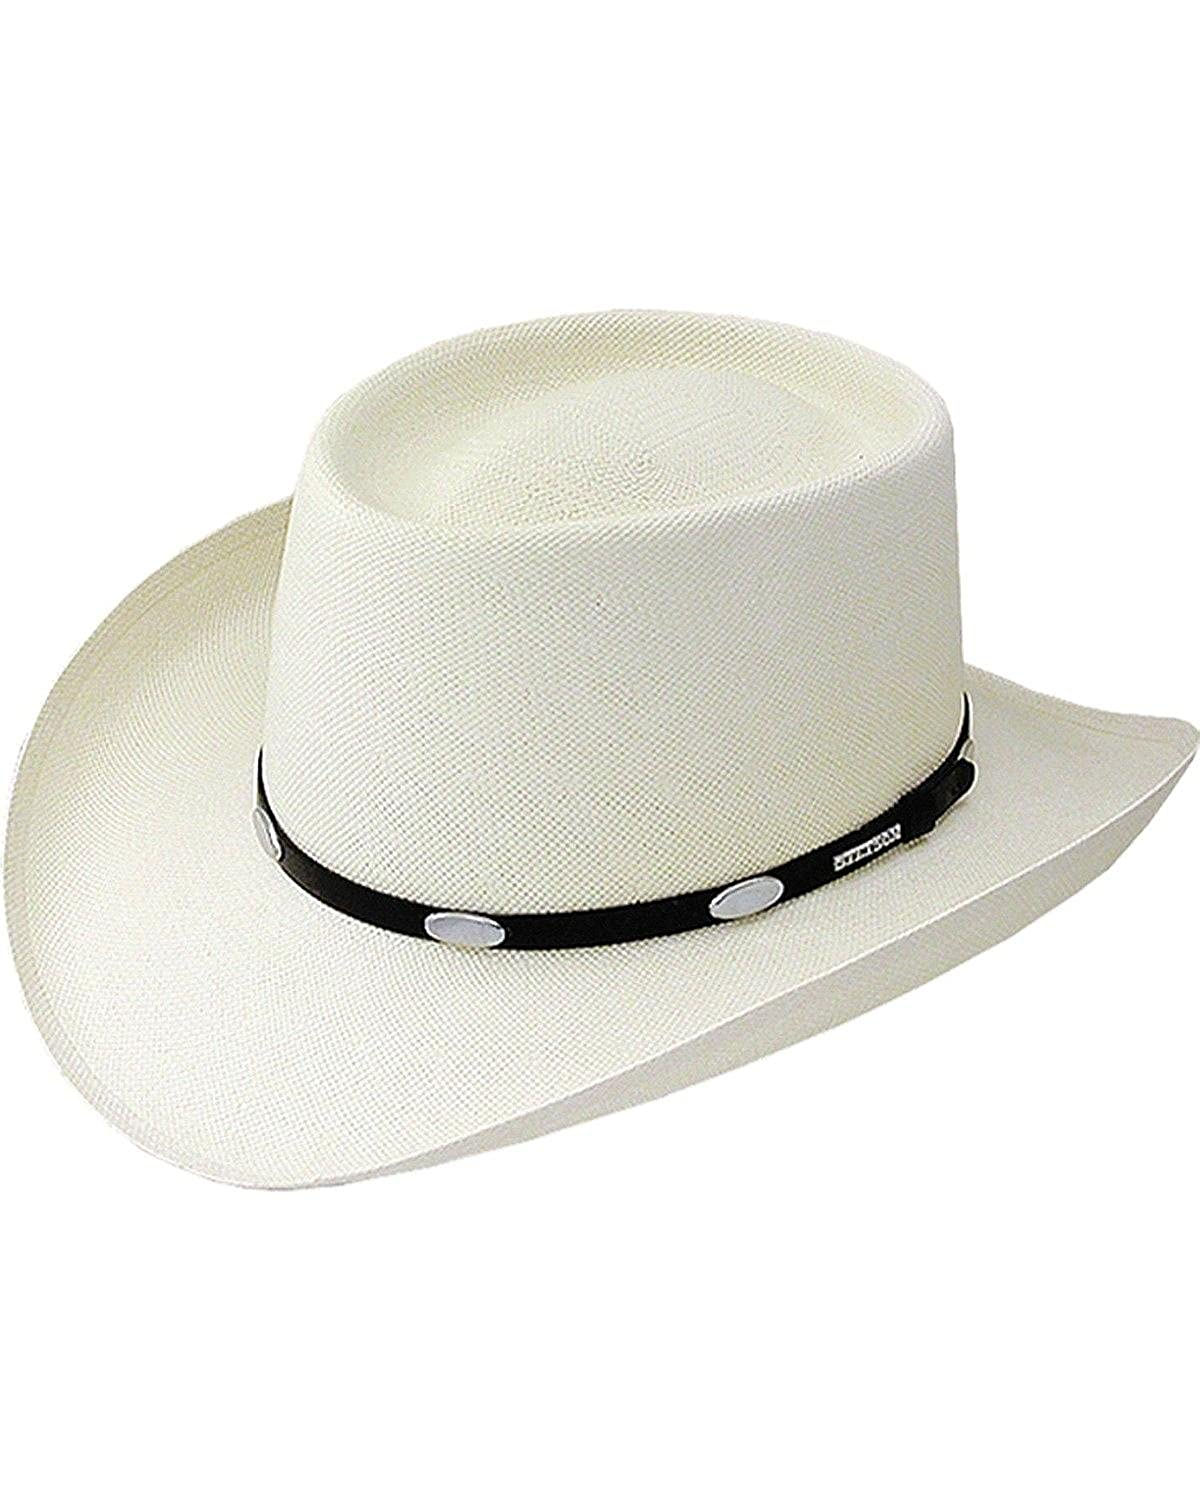 Stetson Men s Royal Flush 10X Shantung Straw Cowboy Hat at Amazon Men s  Clothing store  f7ebd9c28cf